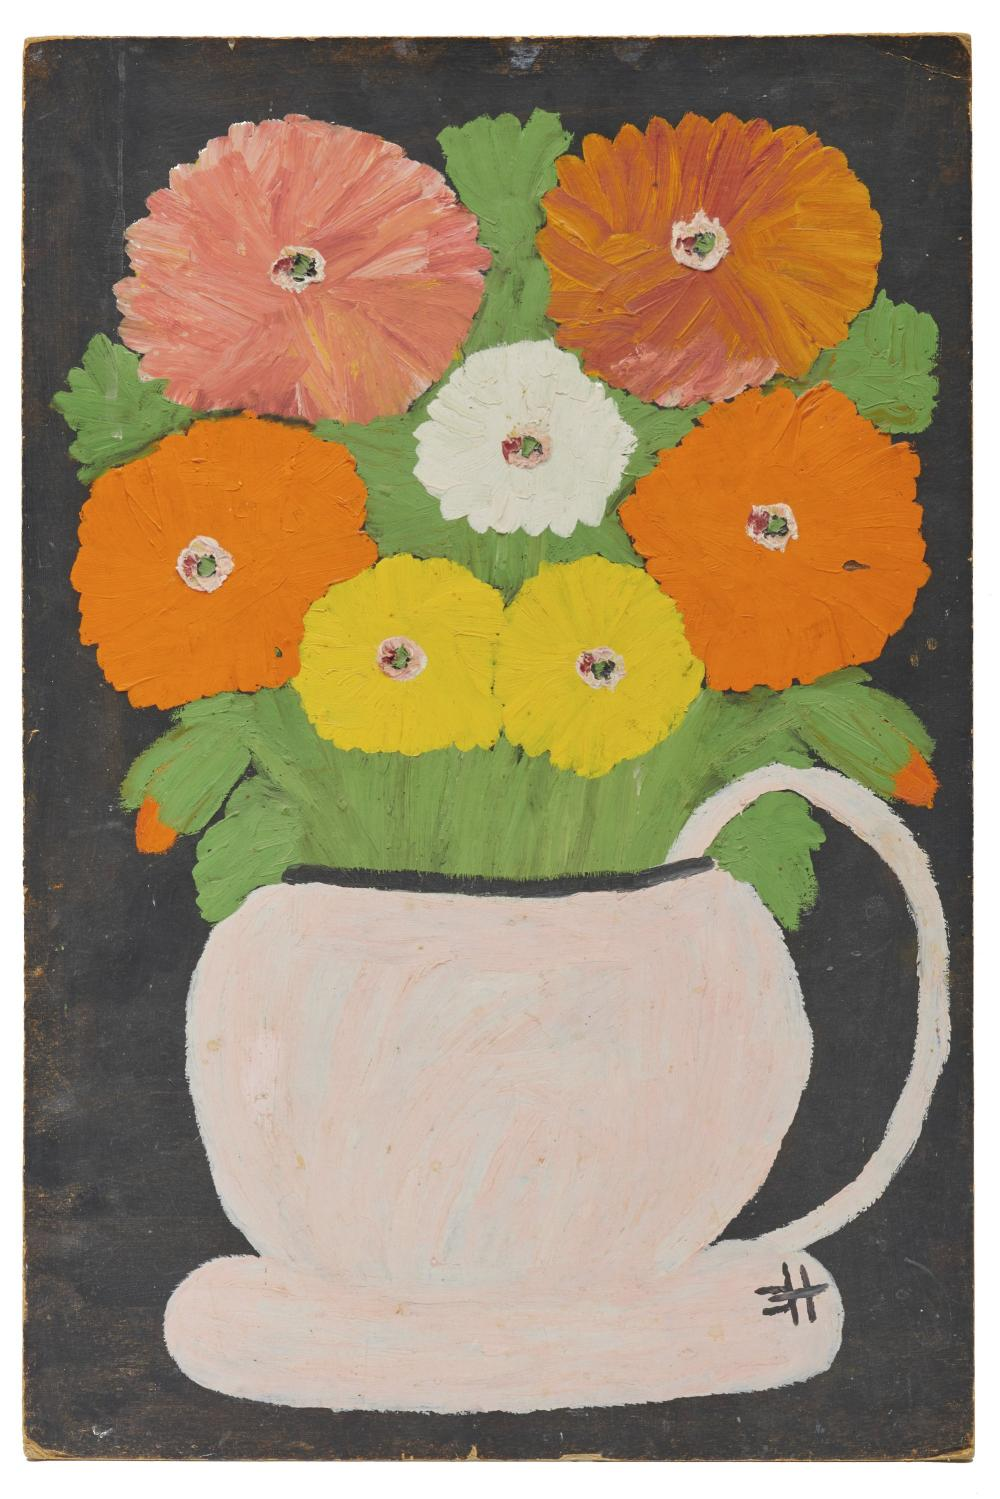 CLEMENTINE REUBEN HUNTER, (American, 1887-1987), Zinnias Looking at You, oil on board, 23 1/2 x 15 1/2 in.